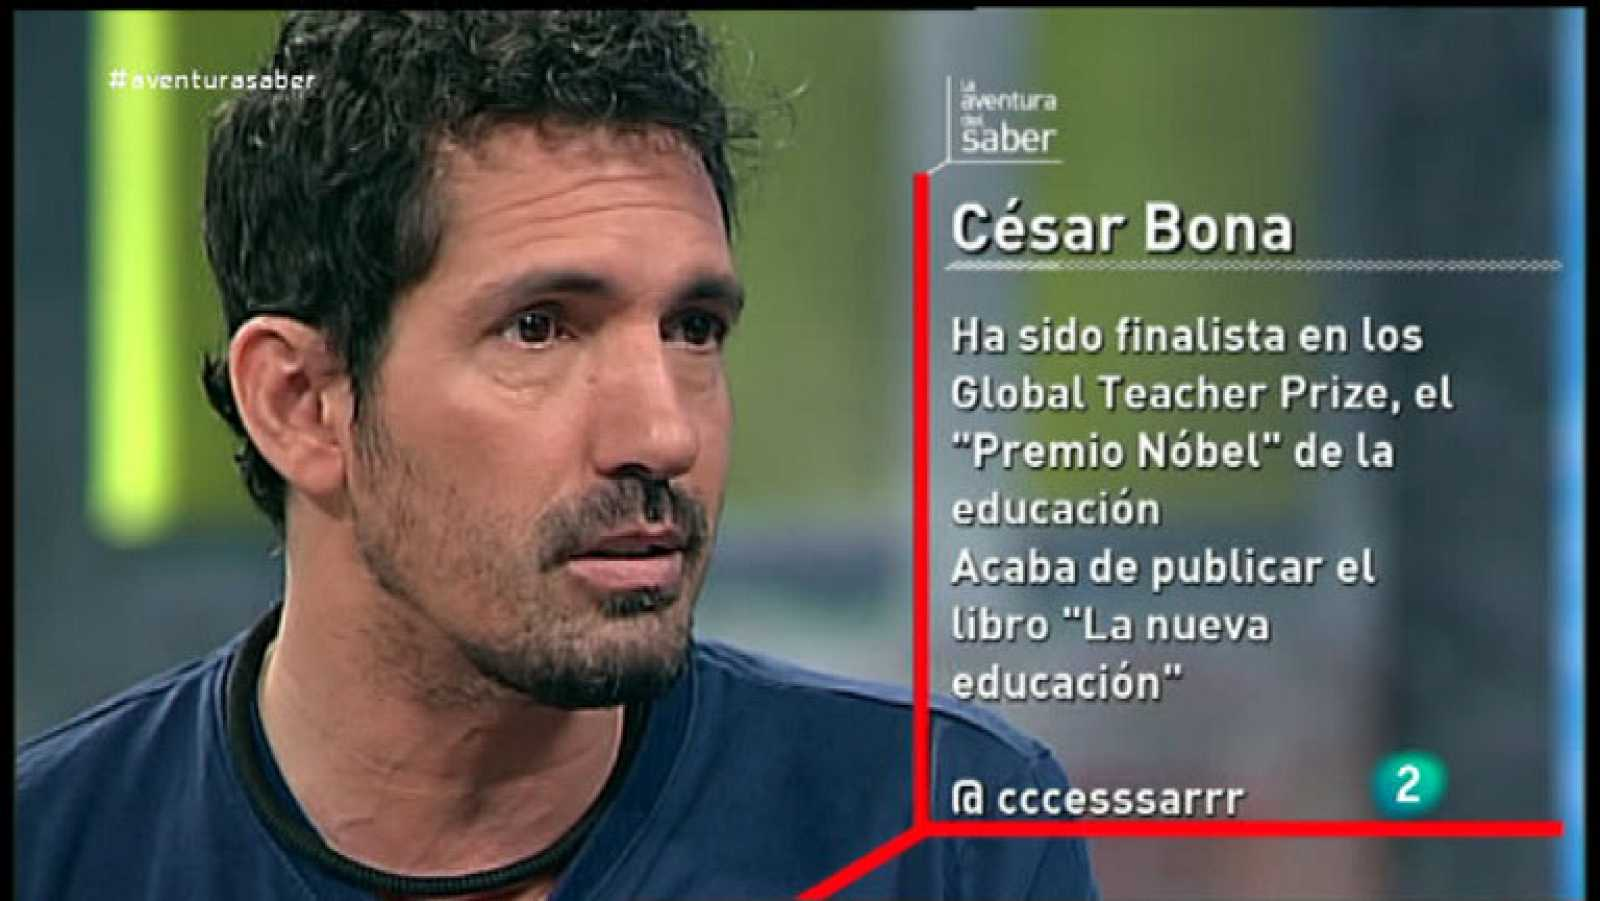 La Aventura del Saber. César Bona. Global Teacher Prize